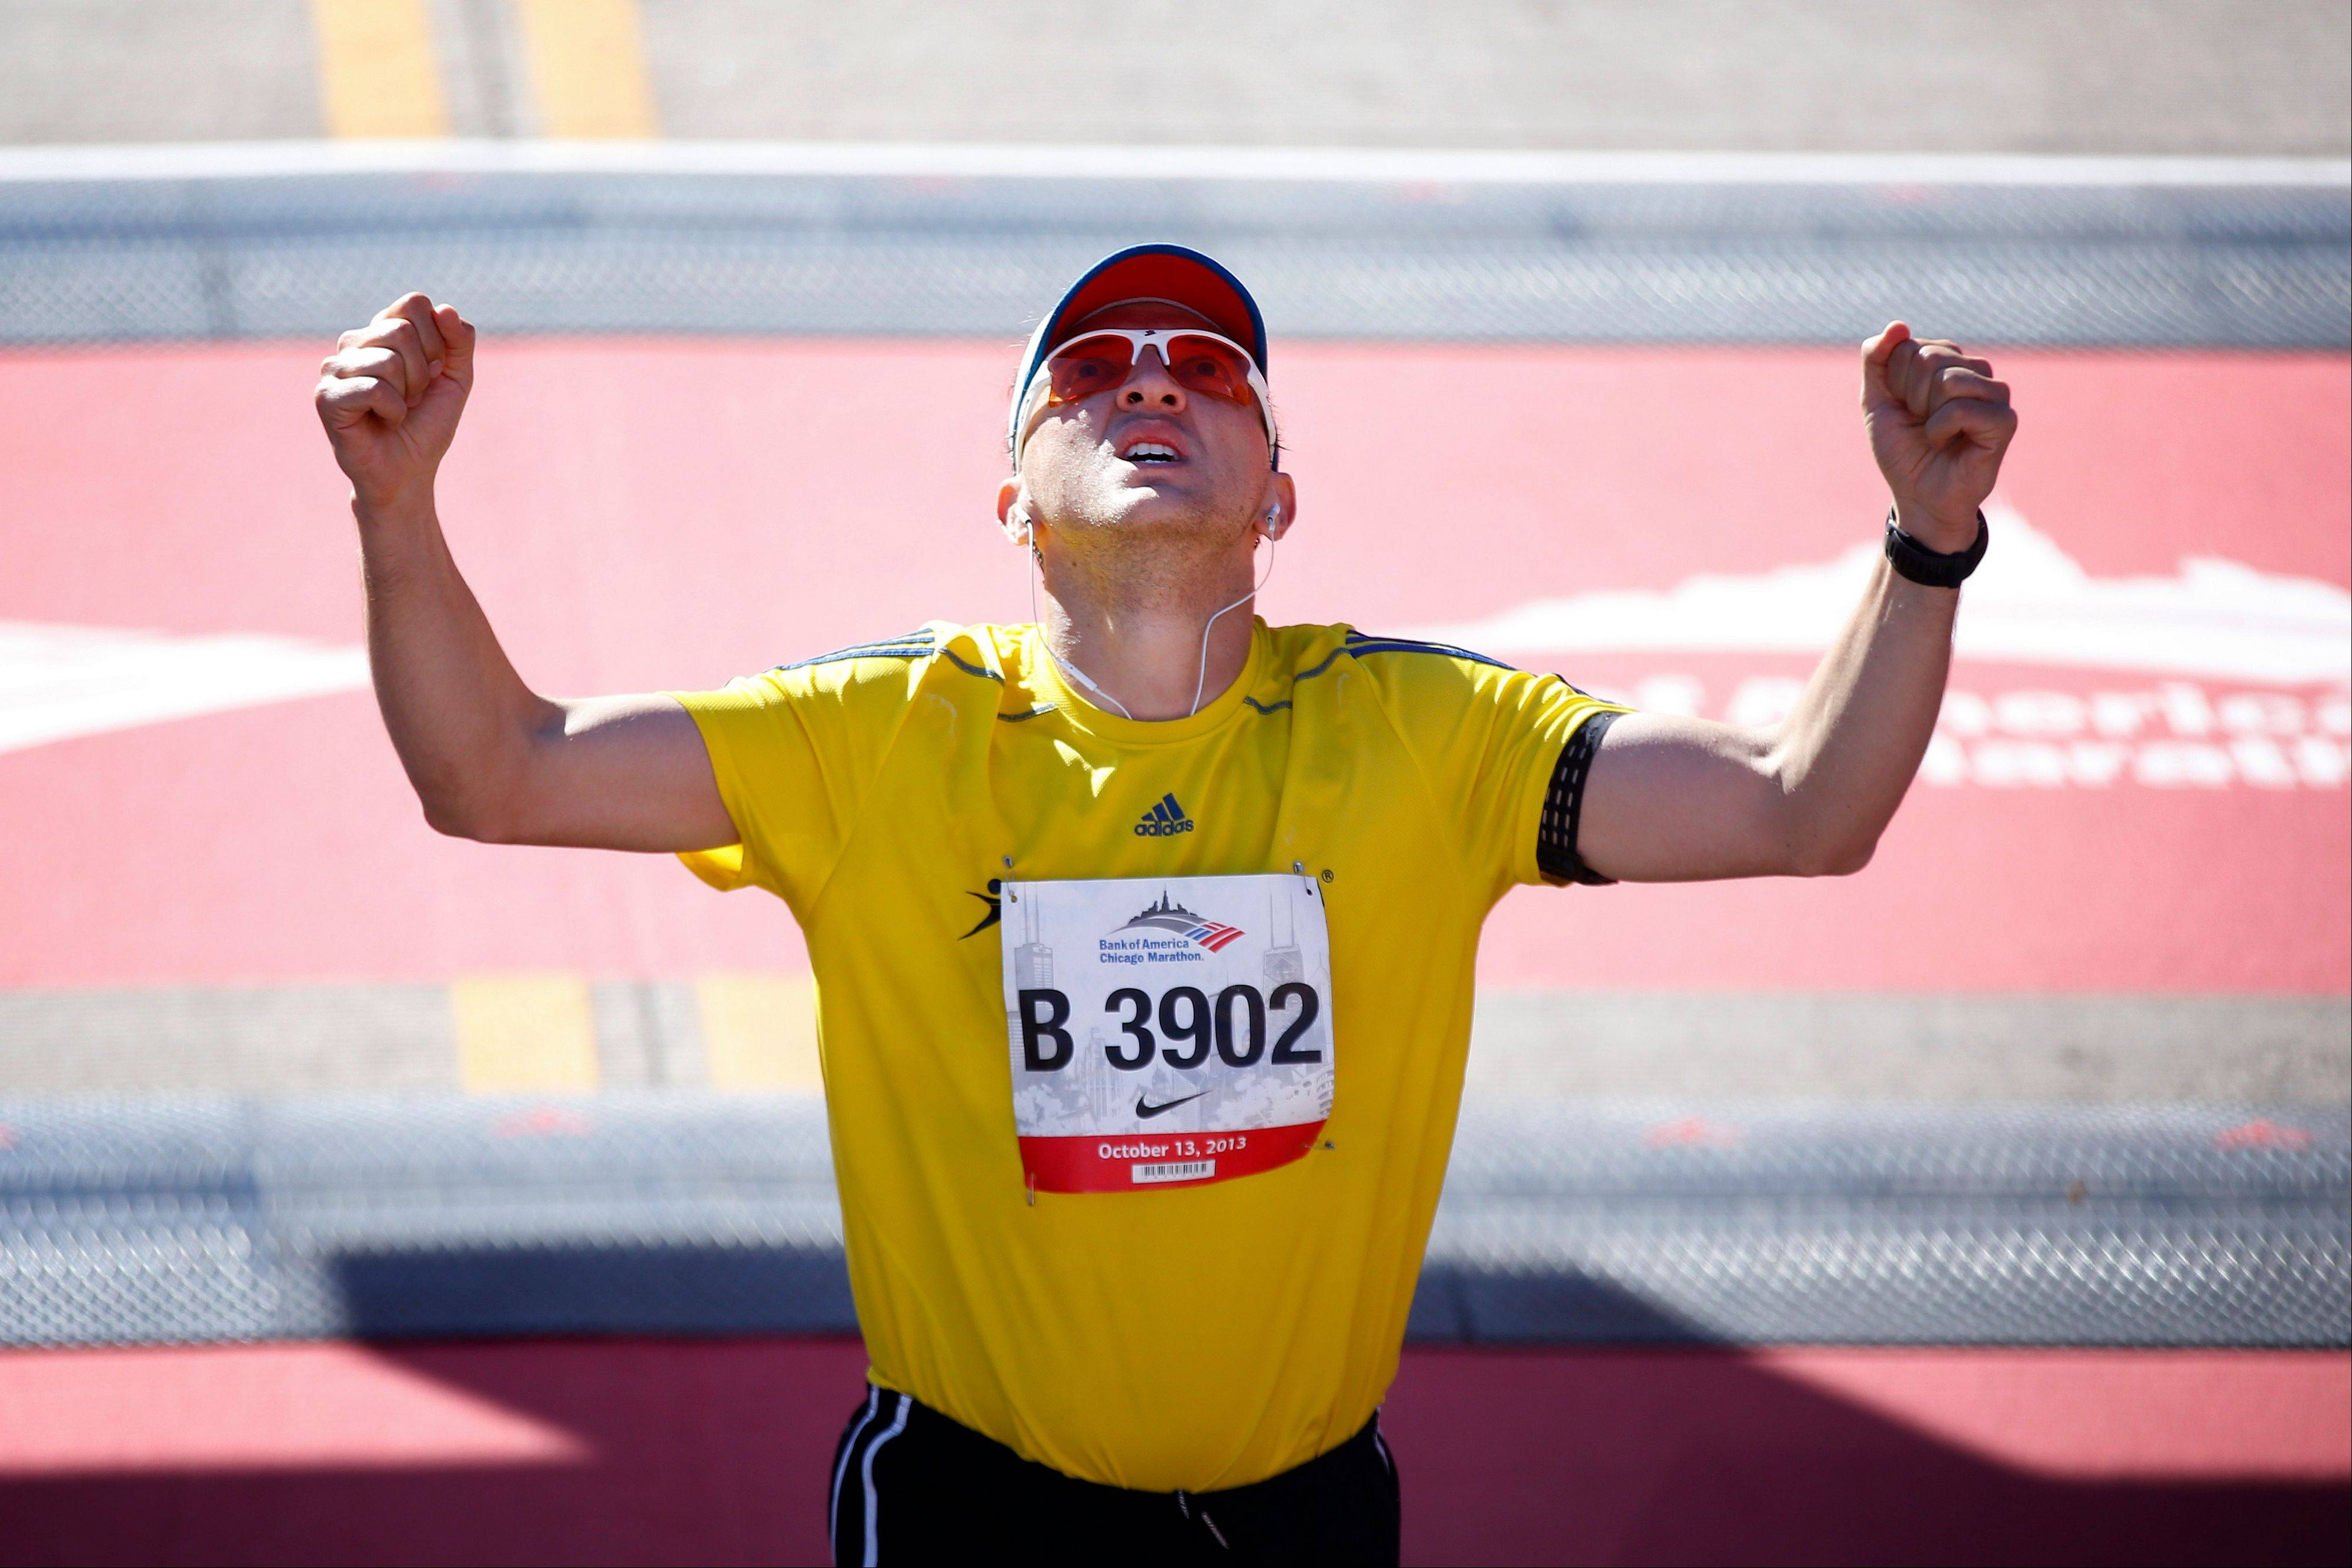 Lucas Perez of Columbia celebrates after crossing the finish line during the Chicago Marathon on Sunday, Oct. 13, 2013, in Chicago.